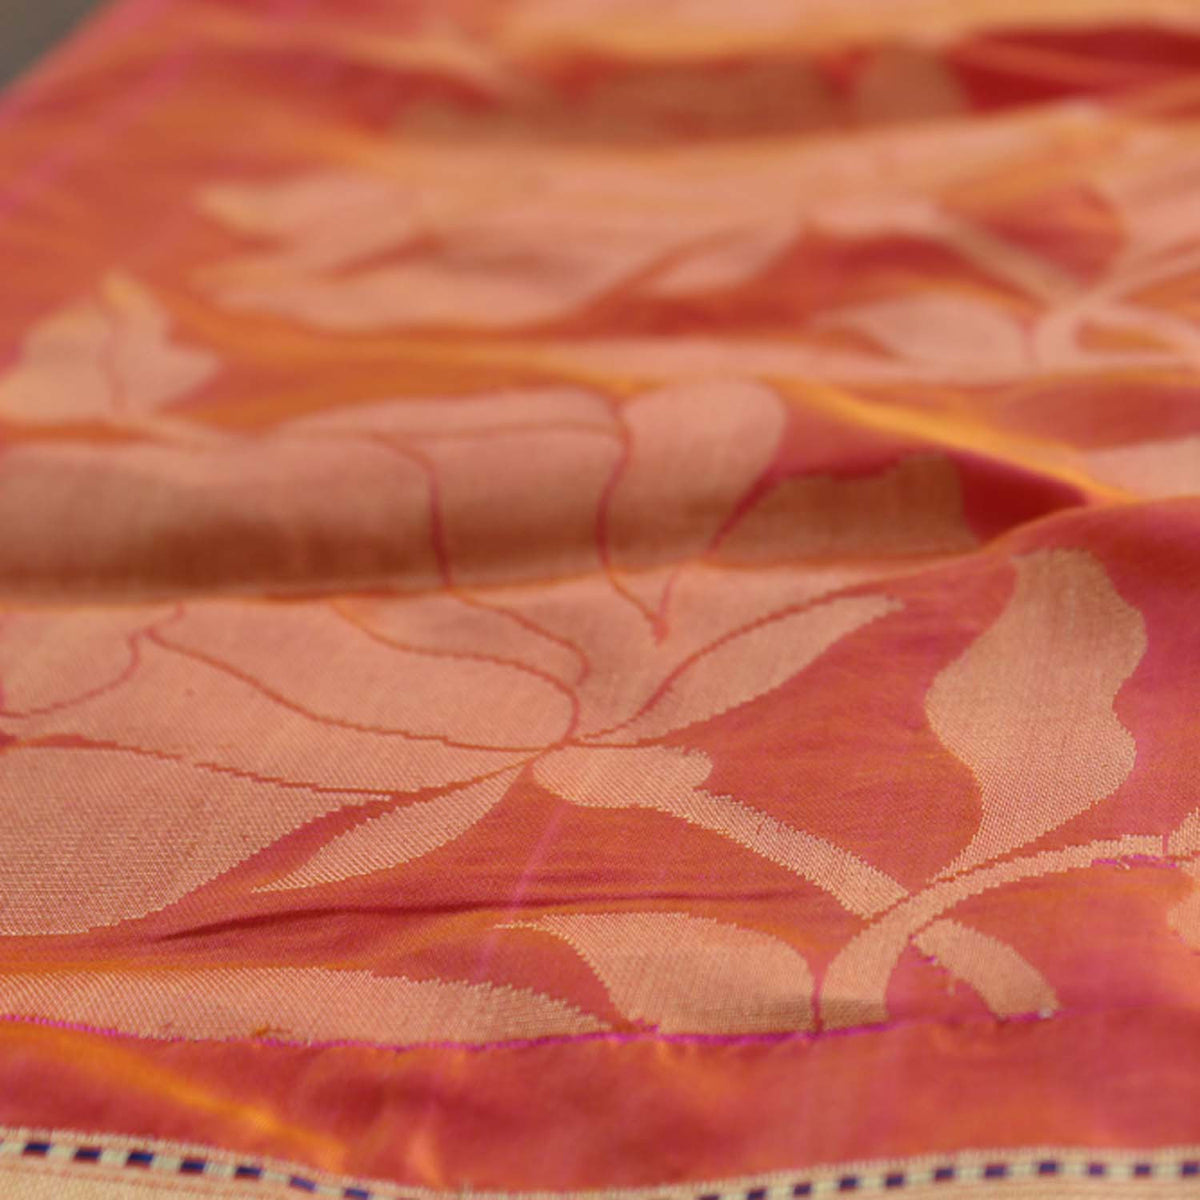 Orange-Indian Pink Pure Katan Silk Banarasi Handloom Saree - Tilfi - 4